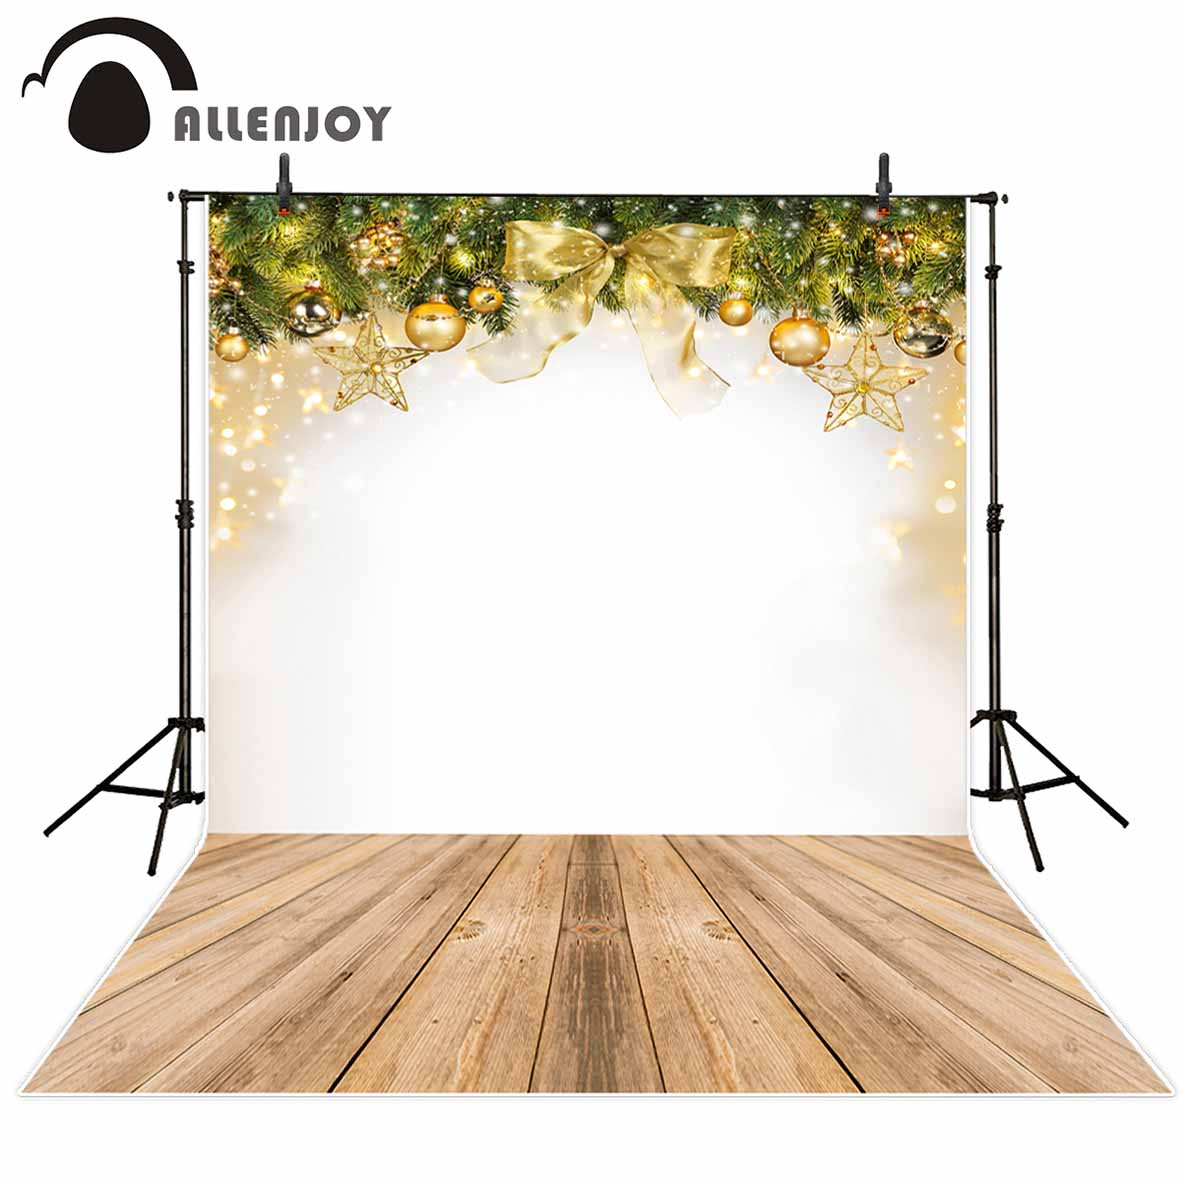 Allenjoy photography background Christmas gold Bow tie bokeh glitter stars wood floor backdrop photo studio photobooth